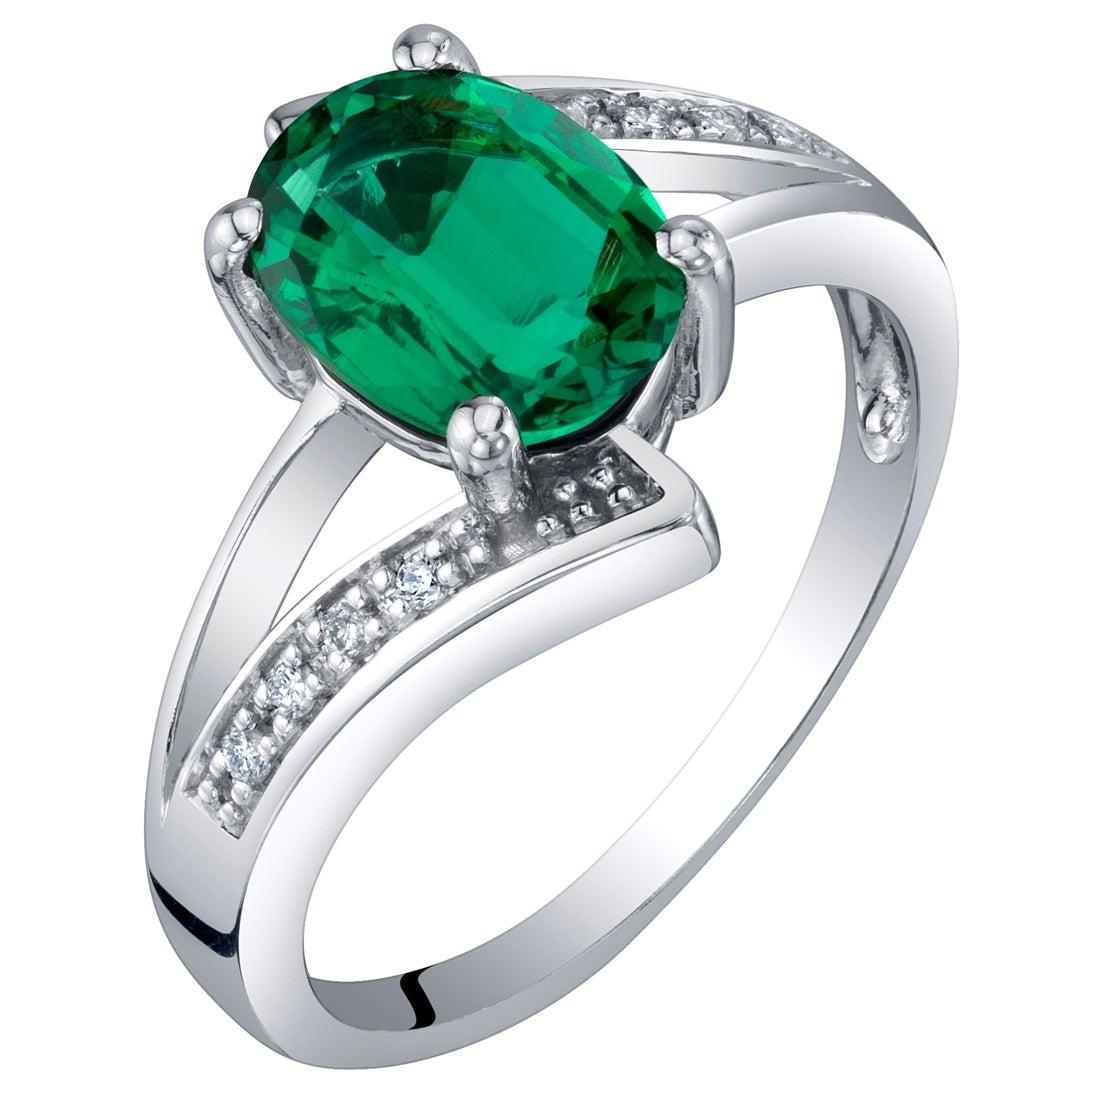 14K White Gold Diamond /& Oval Emerald May Stone Ring Size 7